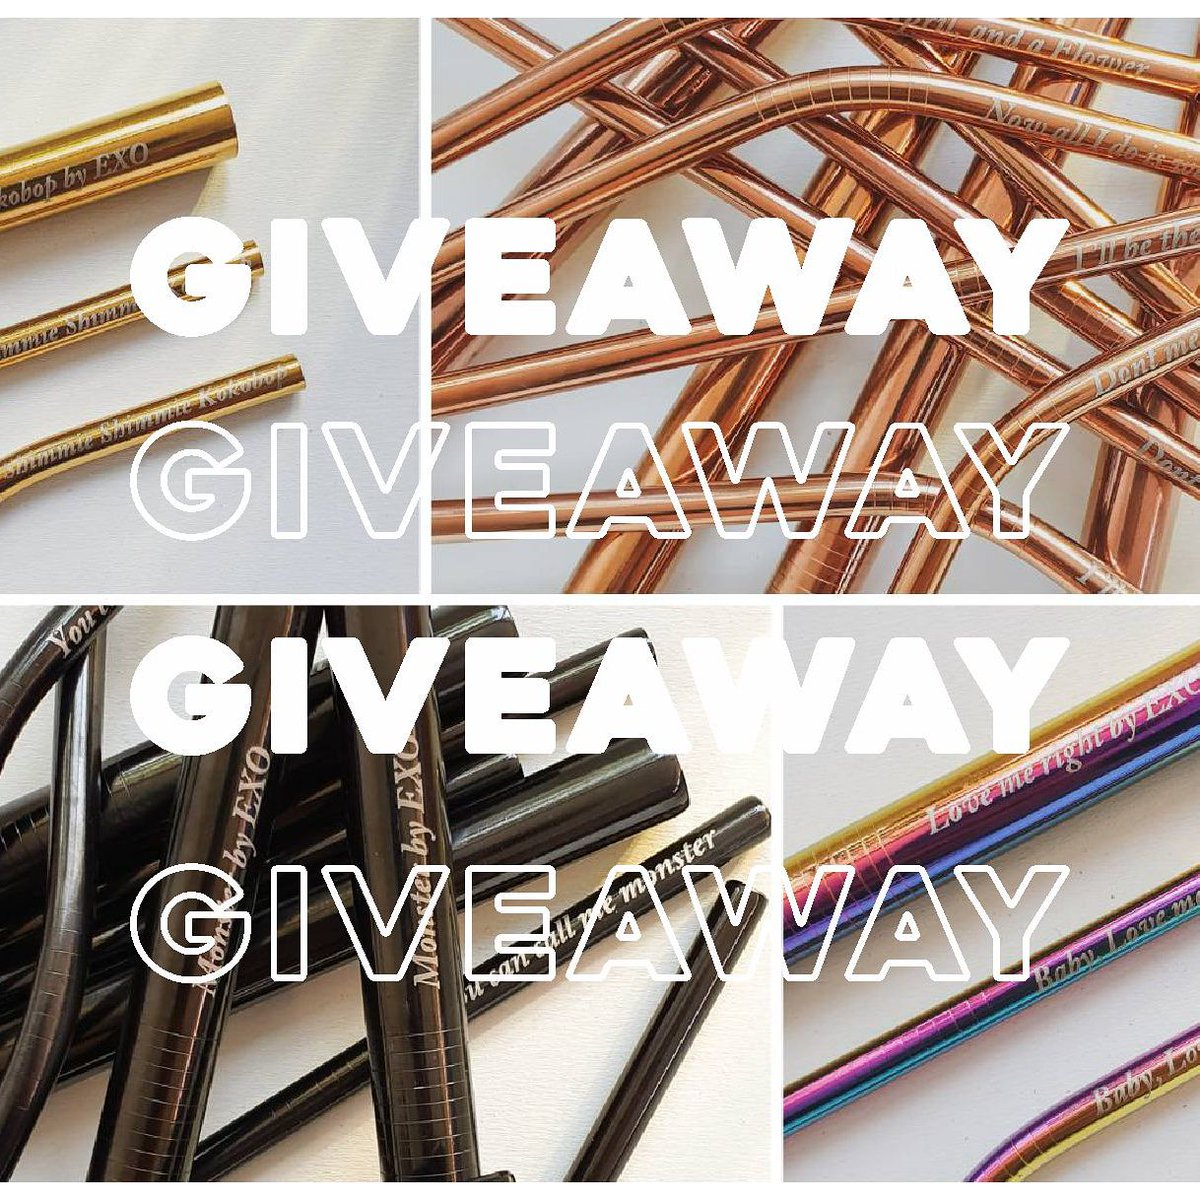 GIVEAWAY  I will choose 2 winners  Each winner will get 1 Set Stainless Straw   Twitter rule :  Like and retweet this post  Follow my acc  Reply with your country  GIVEAWAY ends on July 7th  So GOOD LUCK   #EXO #EXOL #giveaway #exostuff #stainlessstraw<br>http://pic.twitter.com/FRXeatORyW